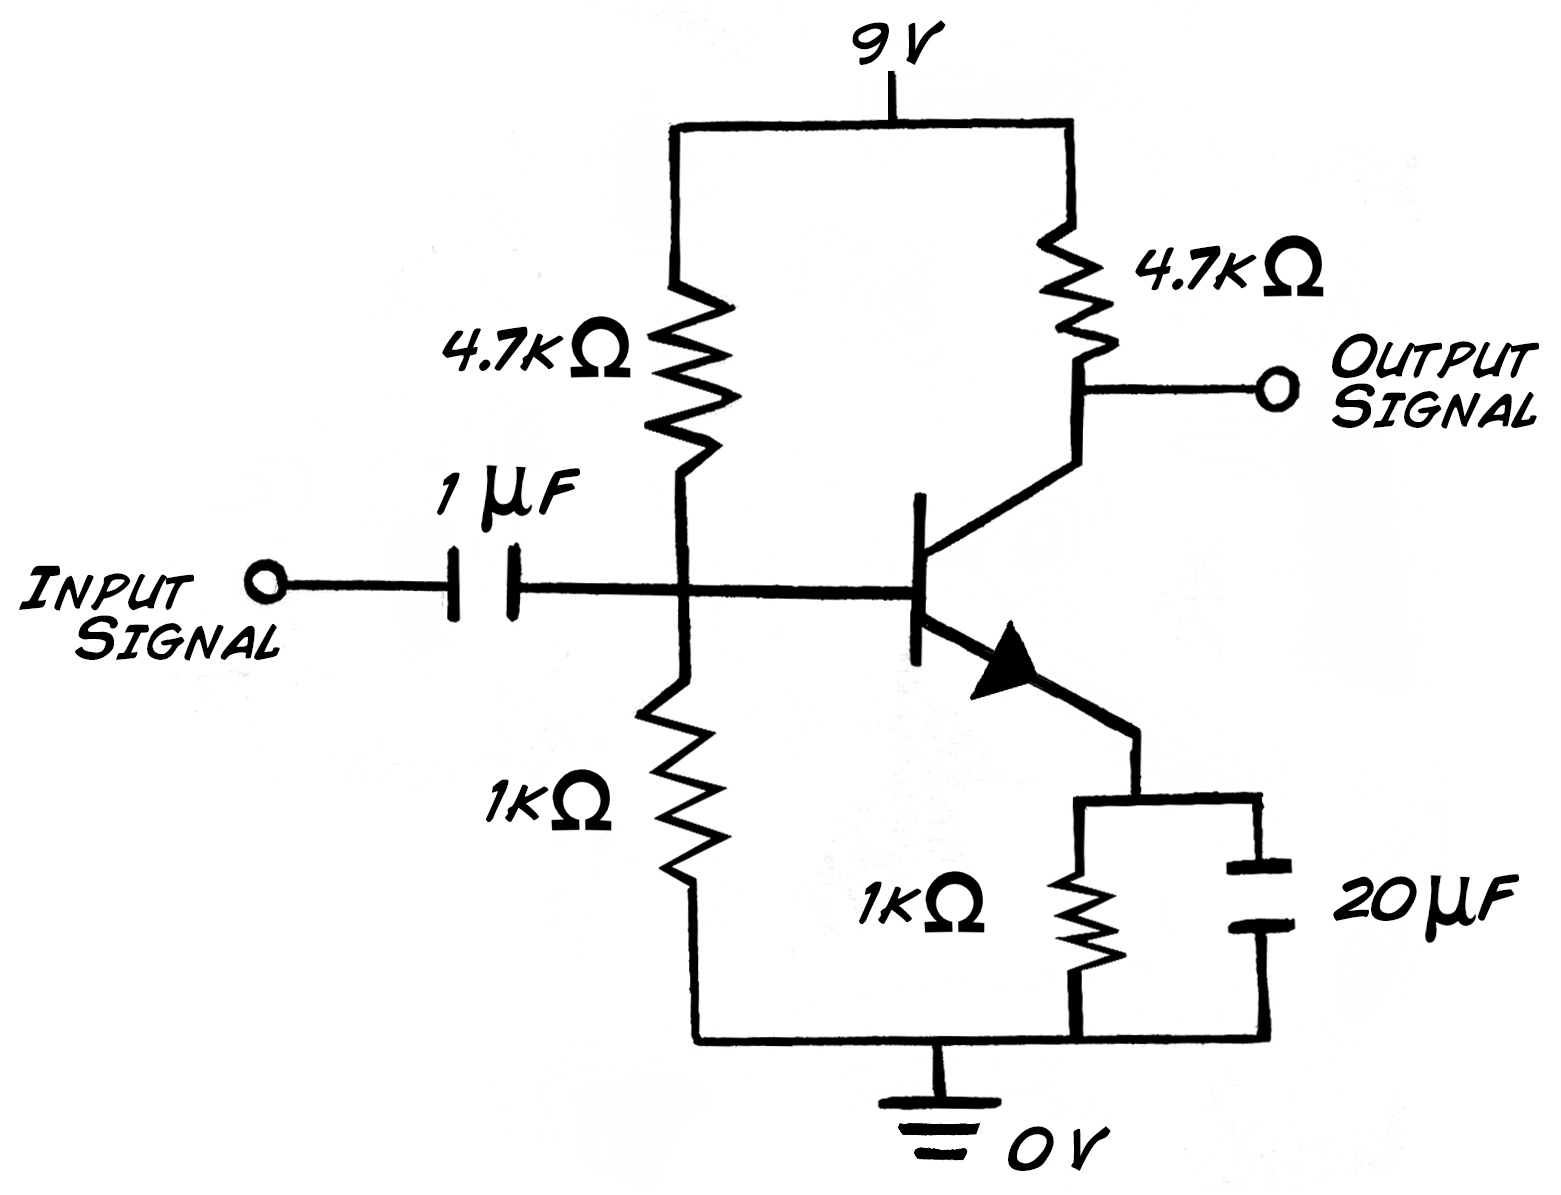 Experiment Transistor Circuit Design With A Switch Basic Concepts And Test Equipment